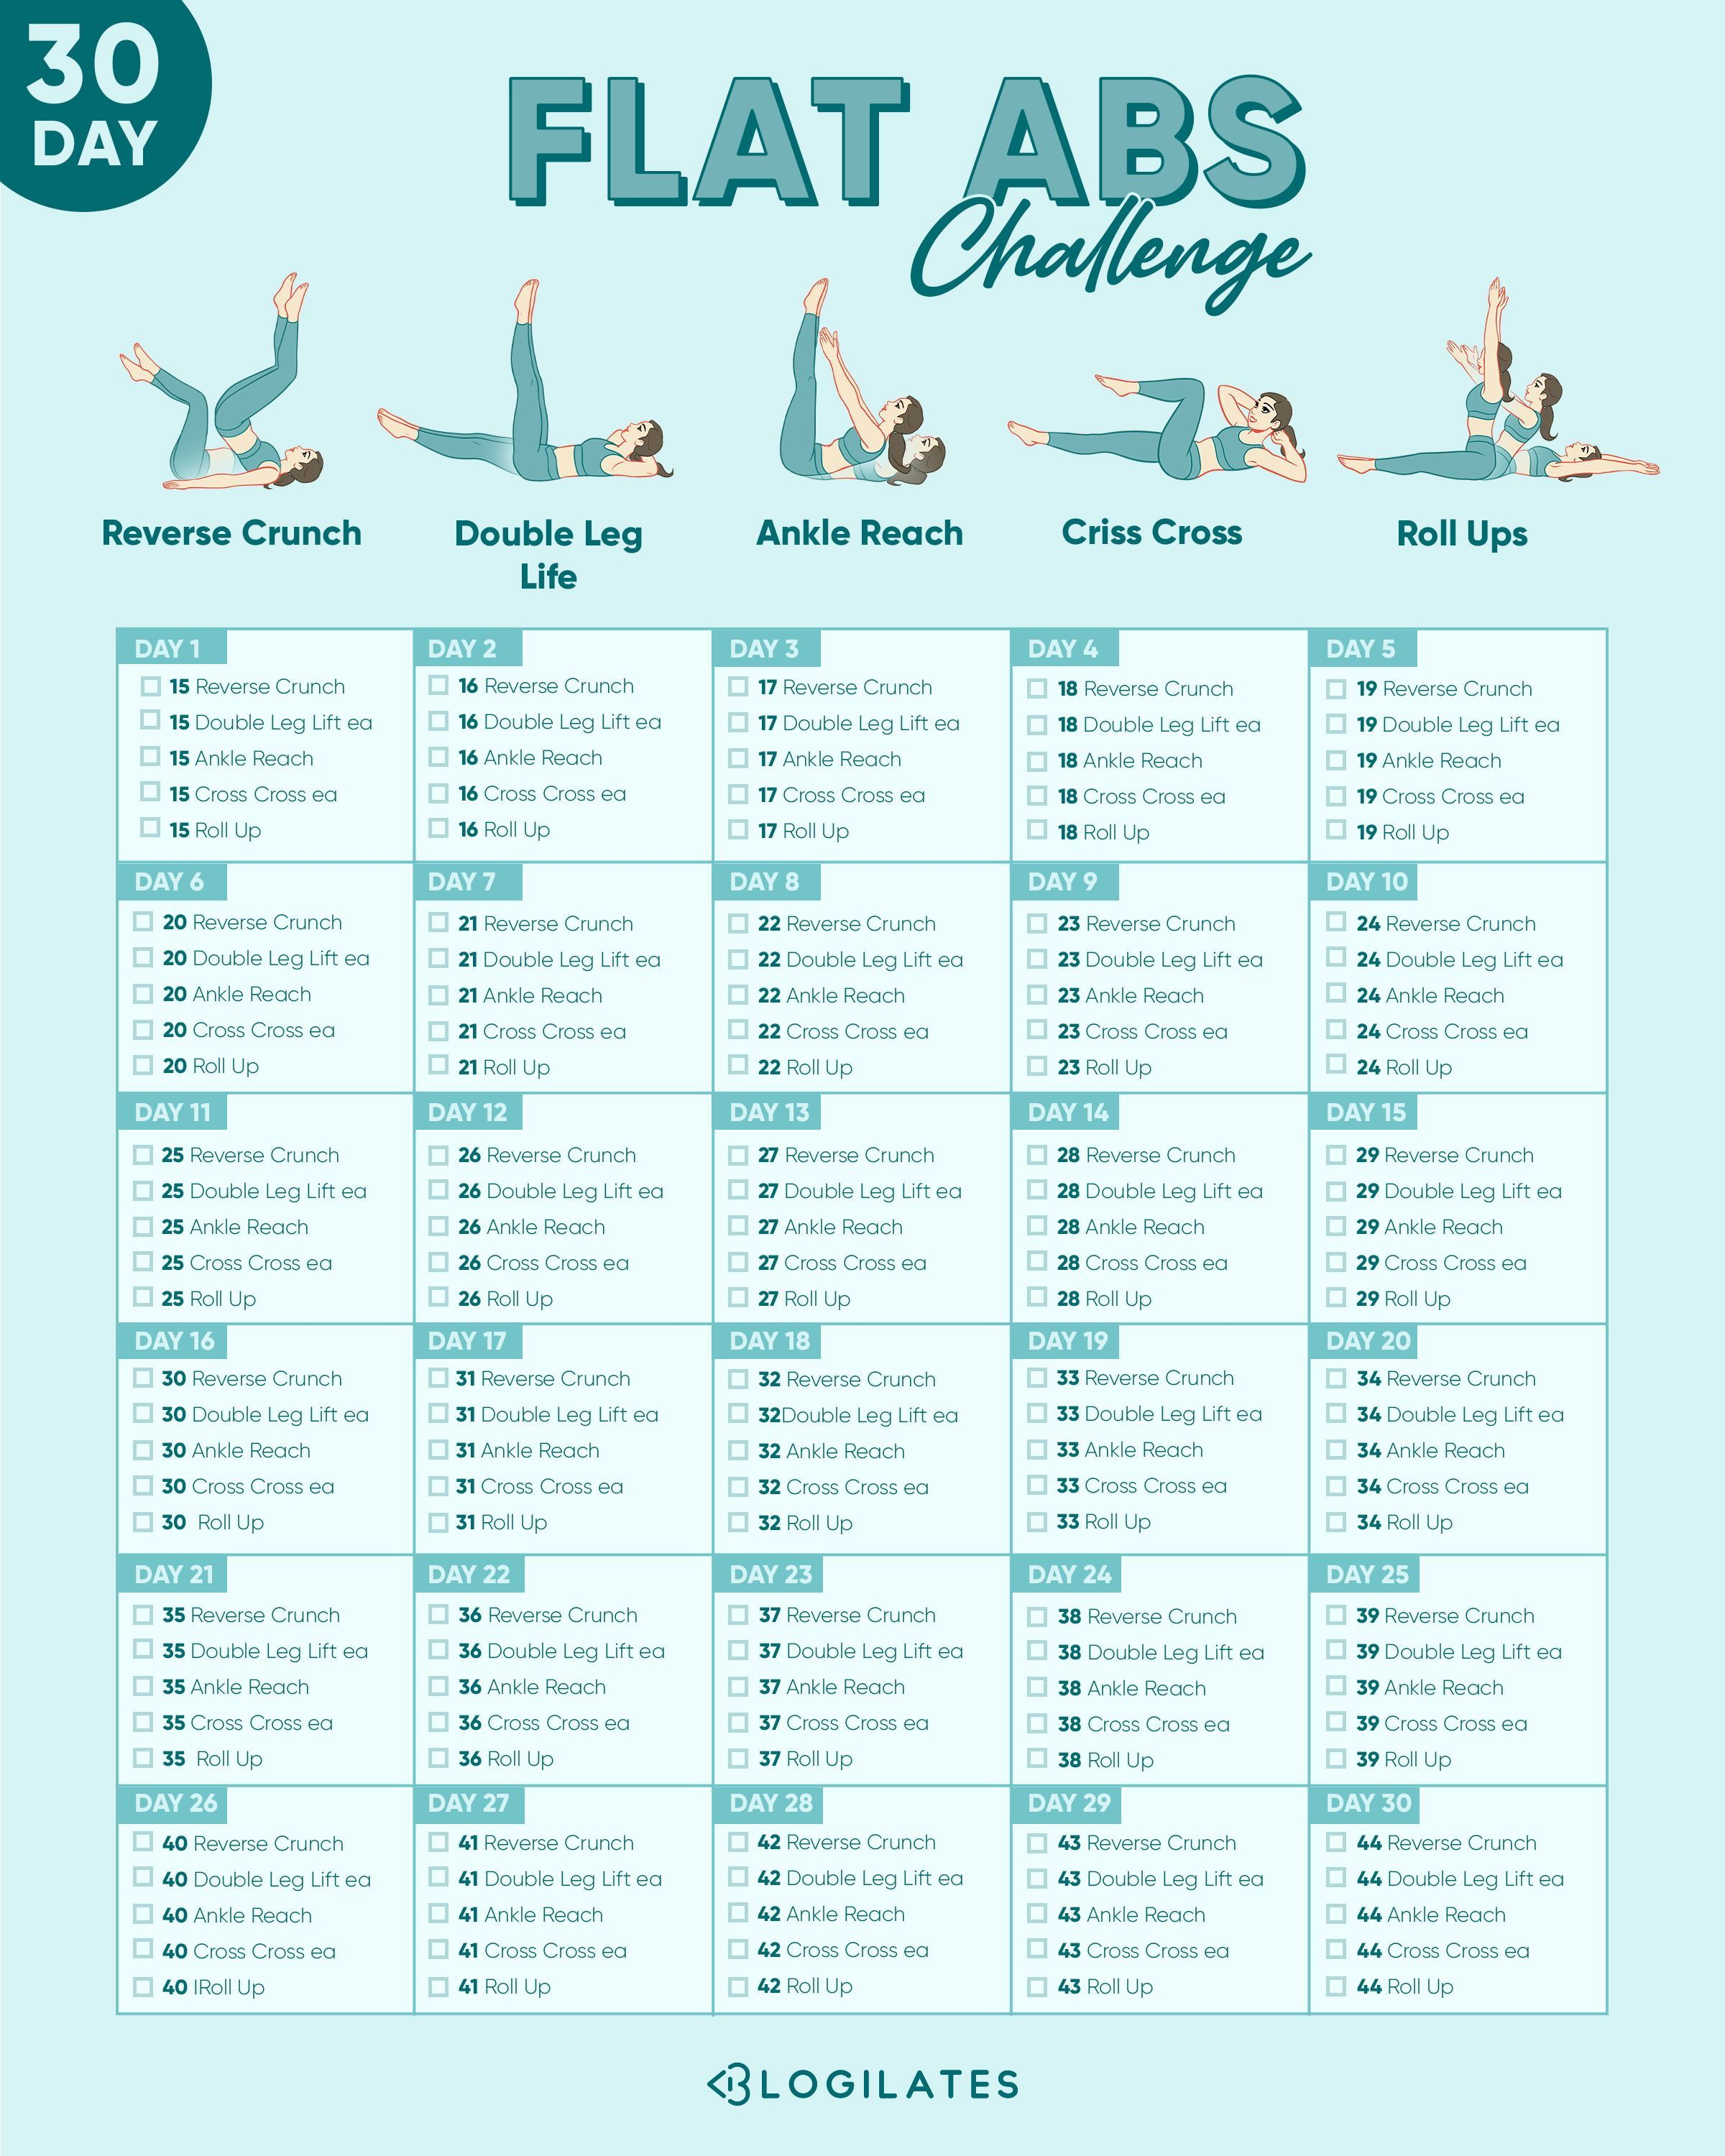 The Flat Abs Challenge! Try this 30 day workout challenge!